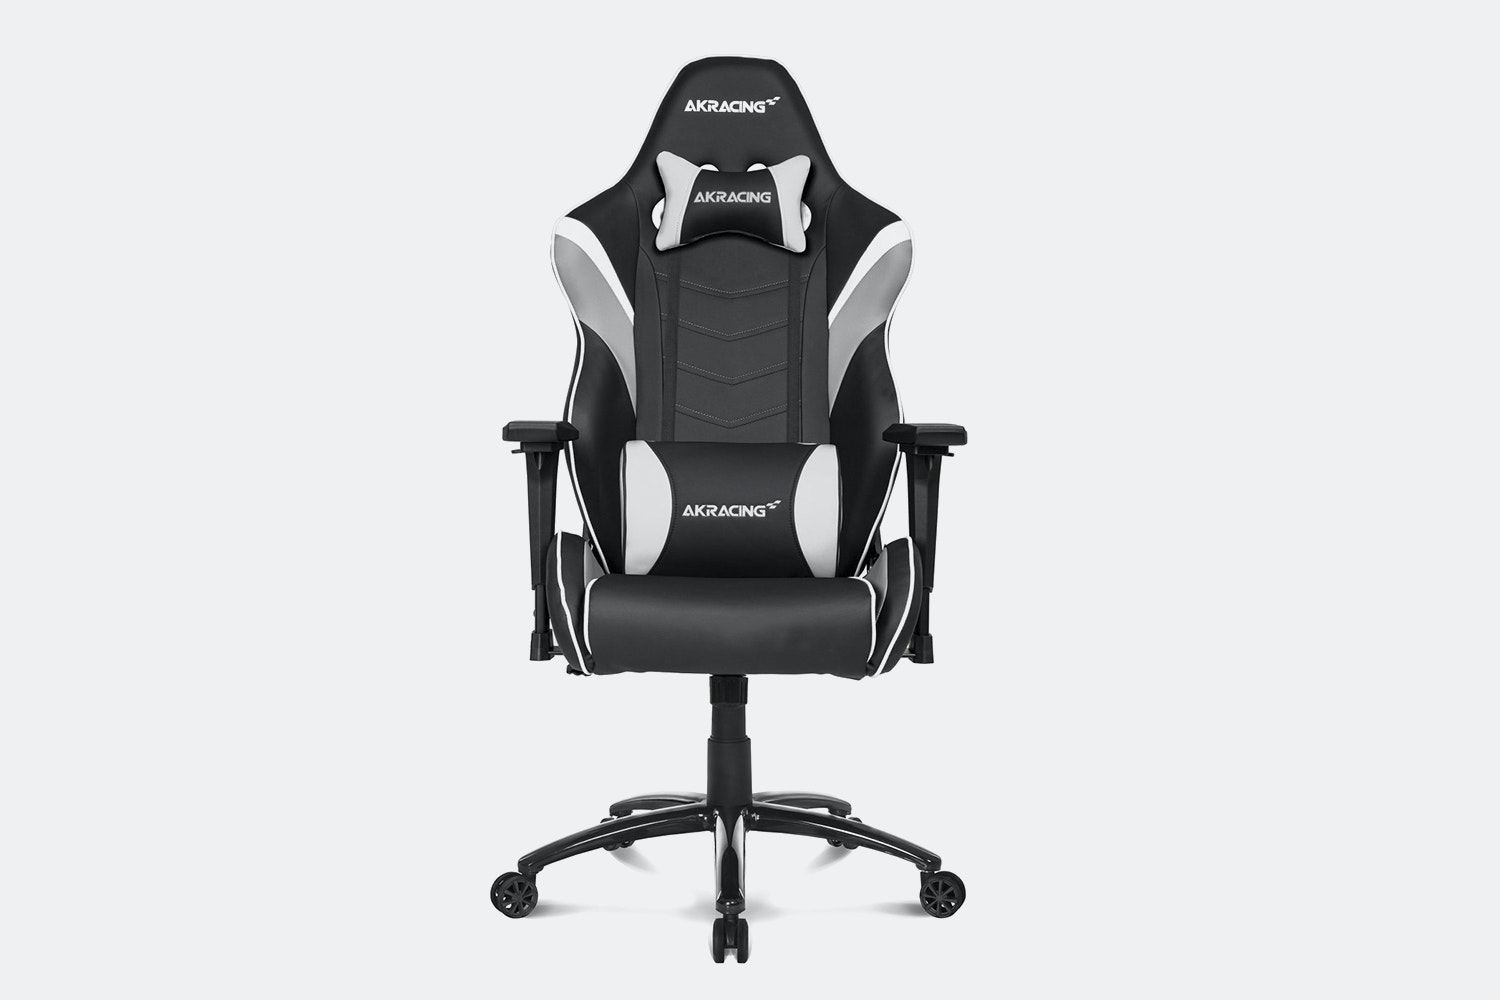 LX Gaming Chair - White (+$10)